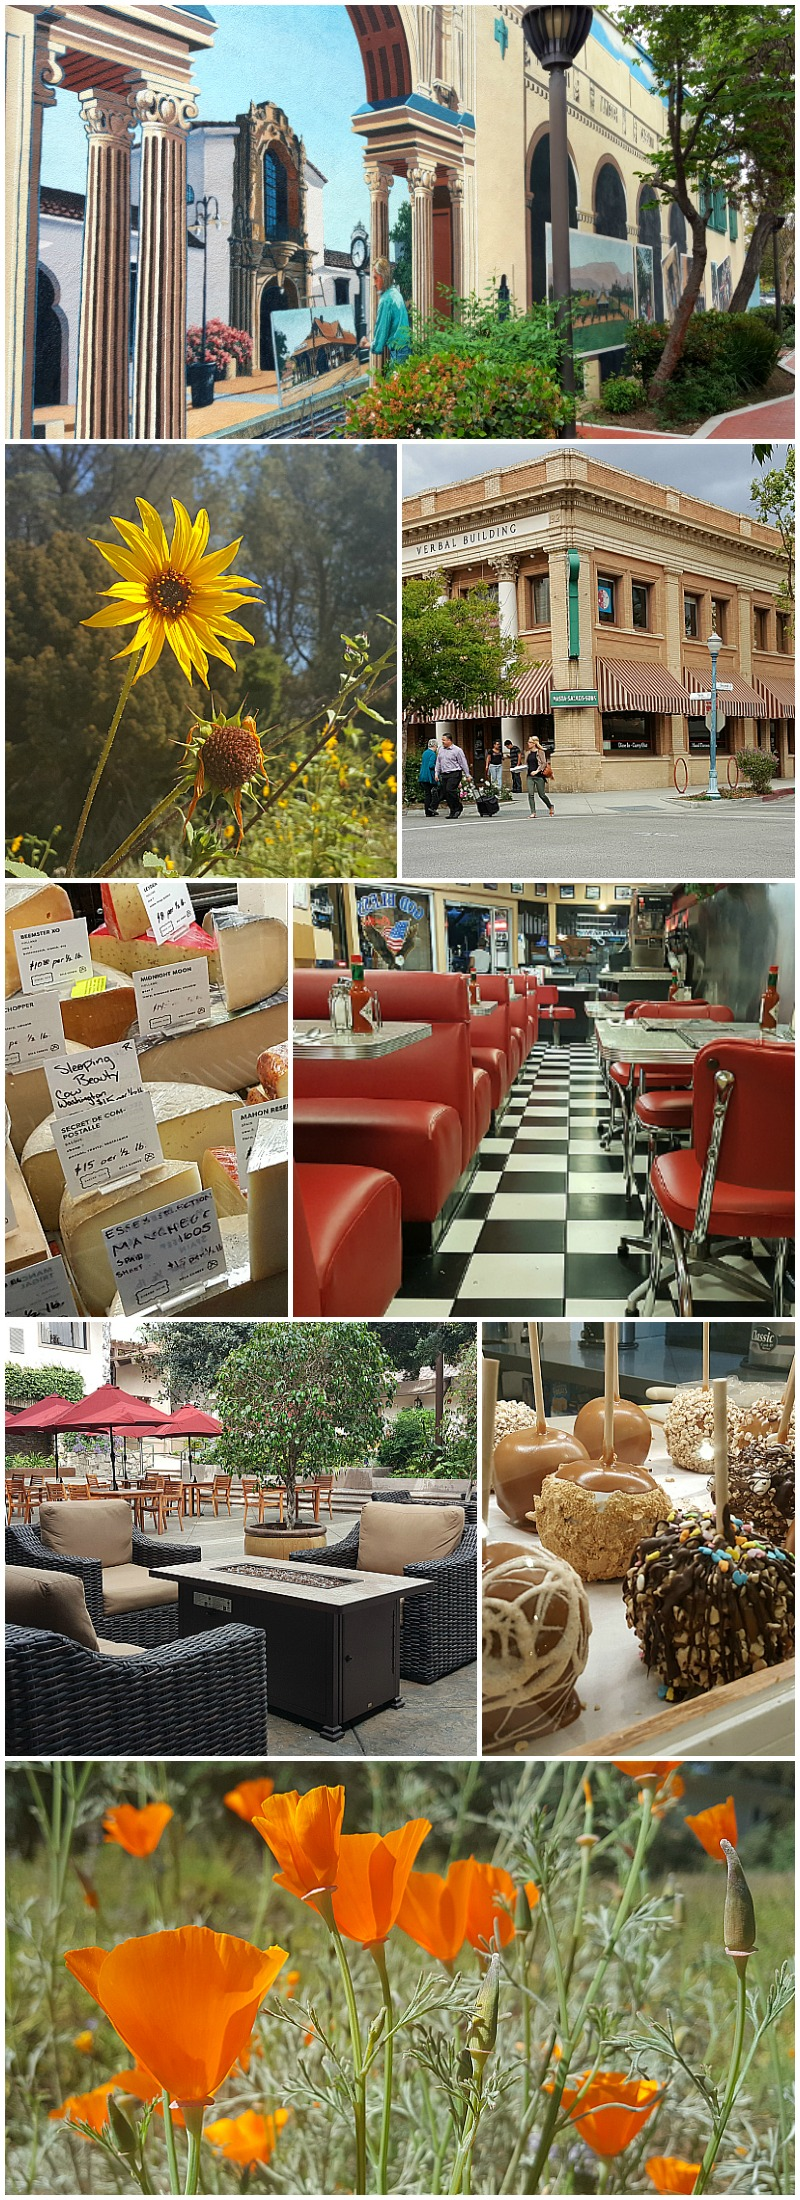 So Much to Eat, Drink, See and Do in Claremont California